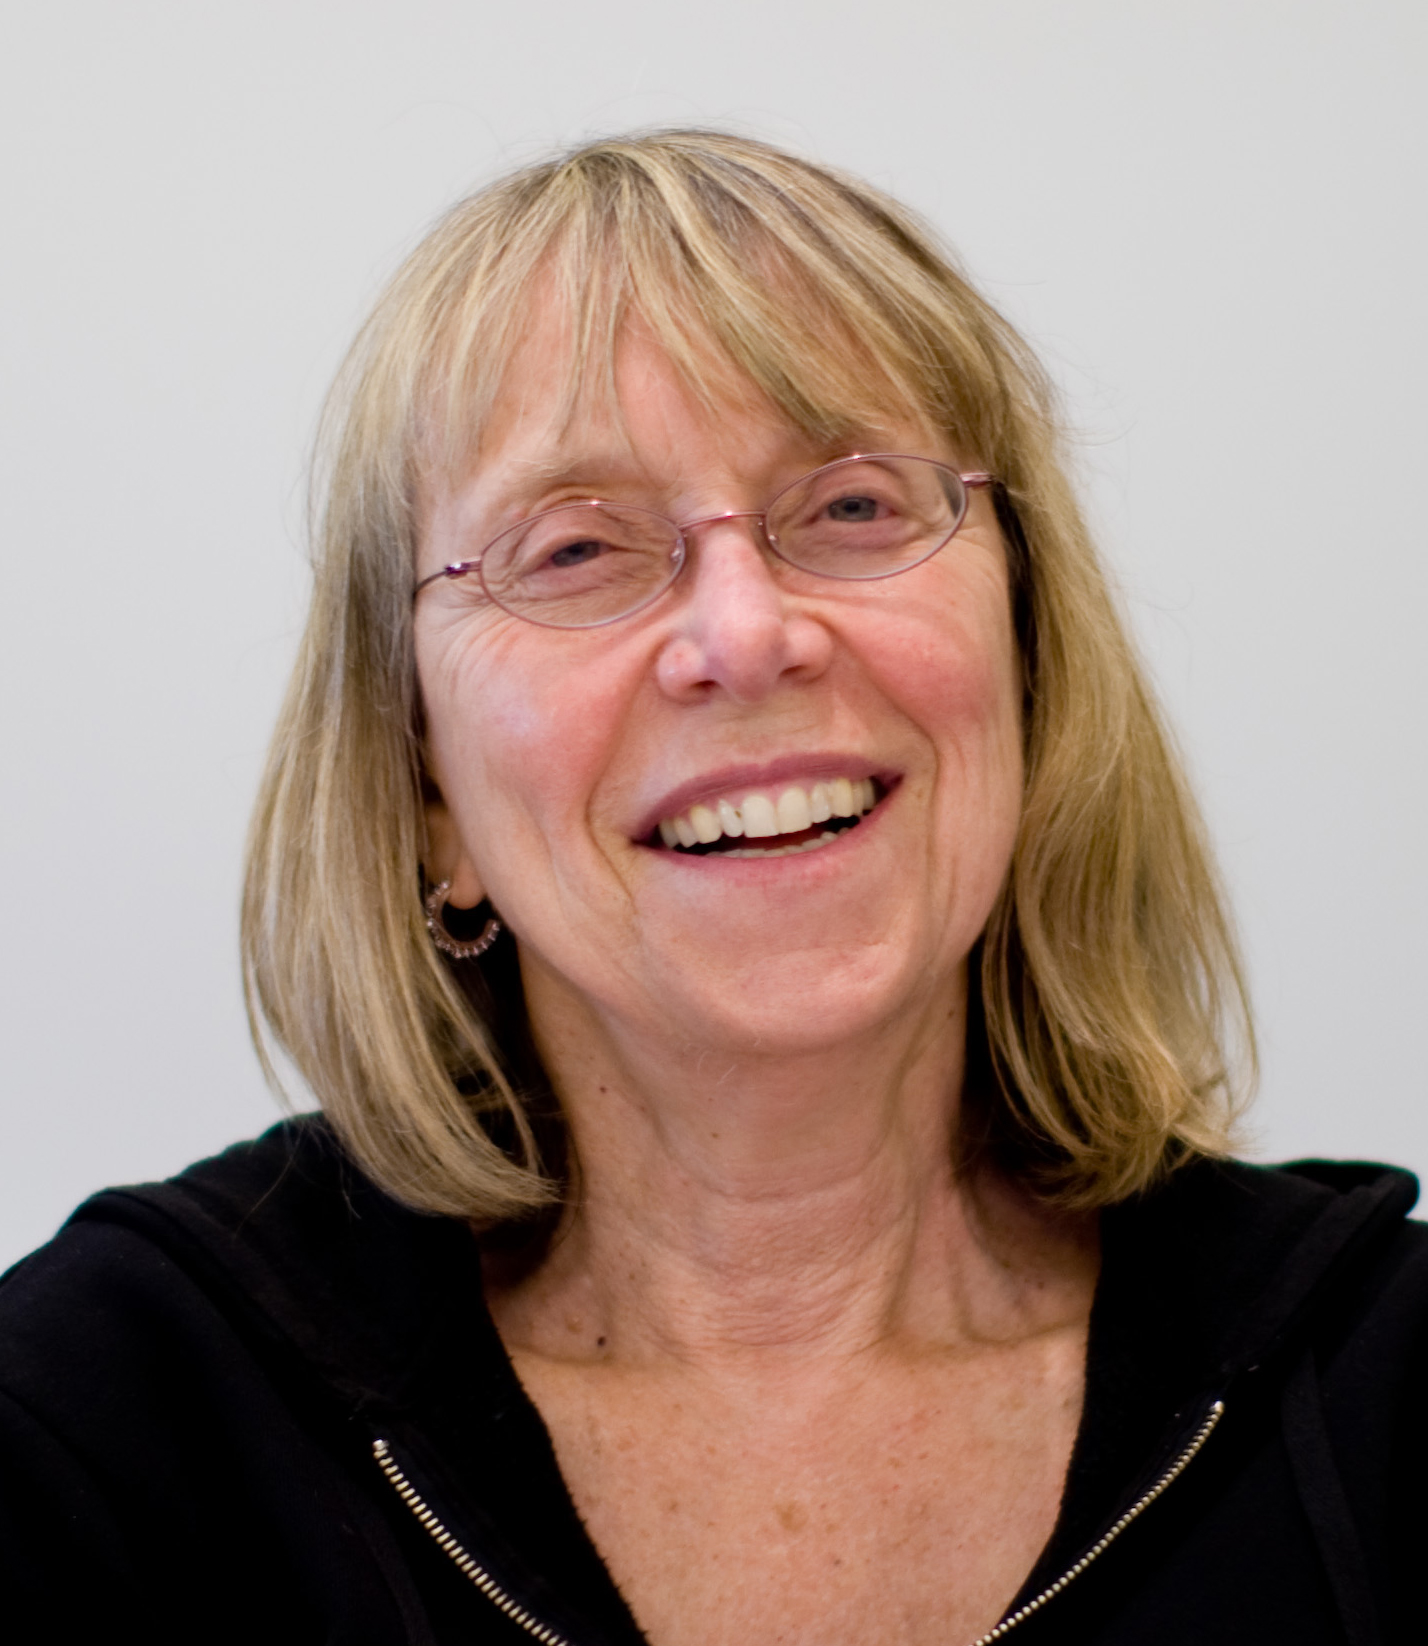 Esther Wojcicki Wikipedia